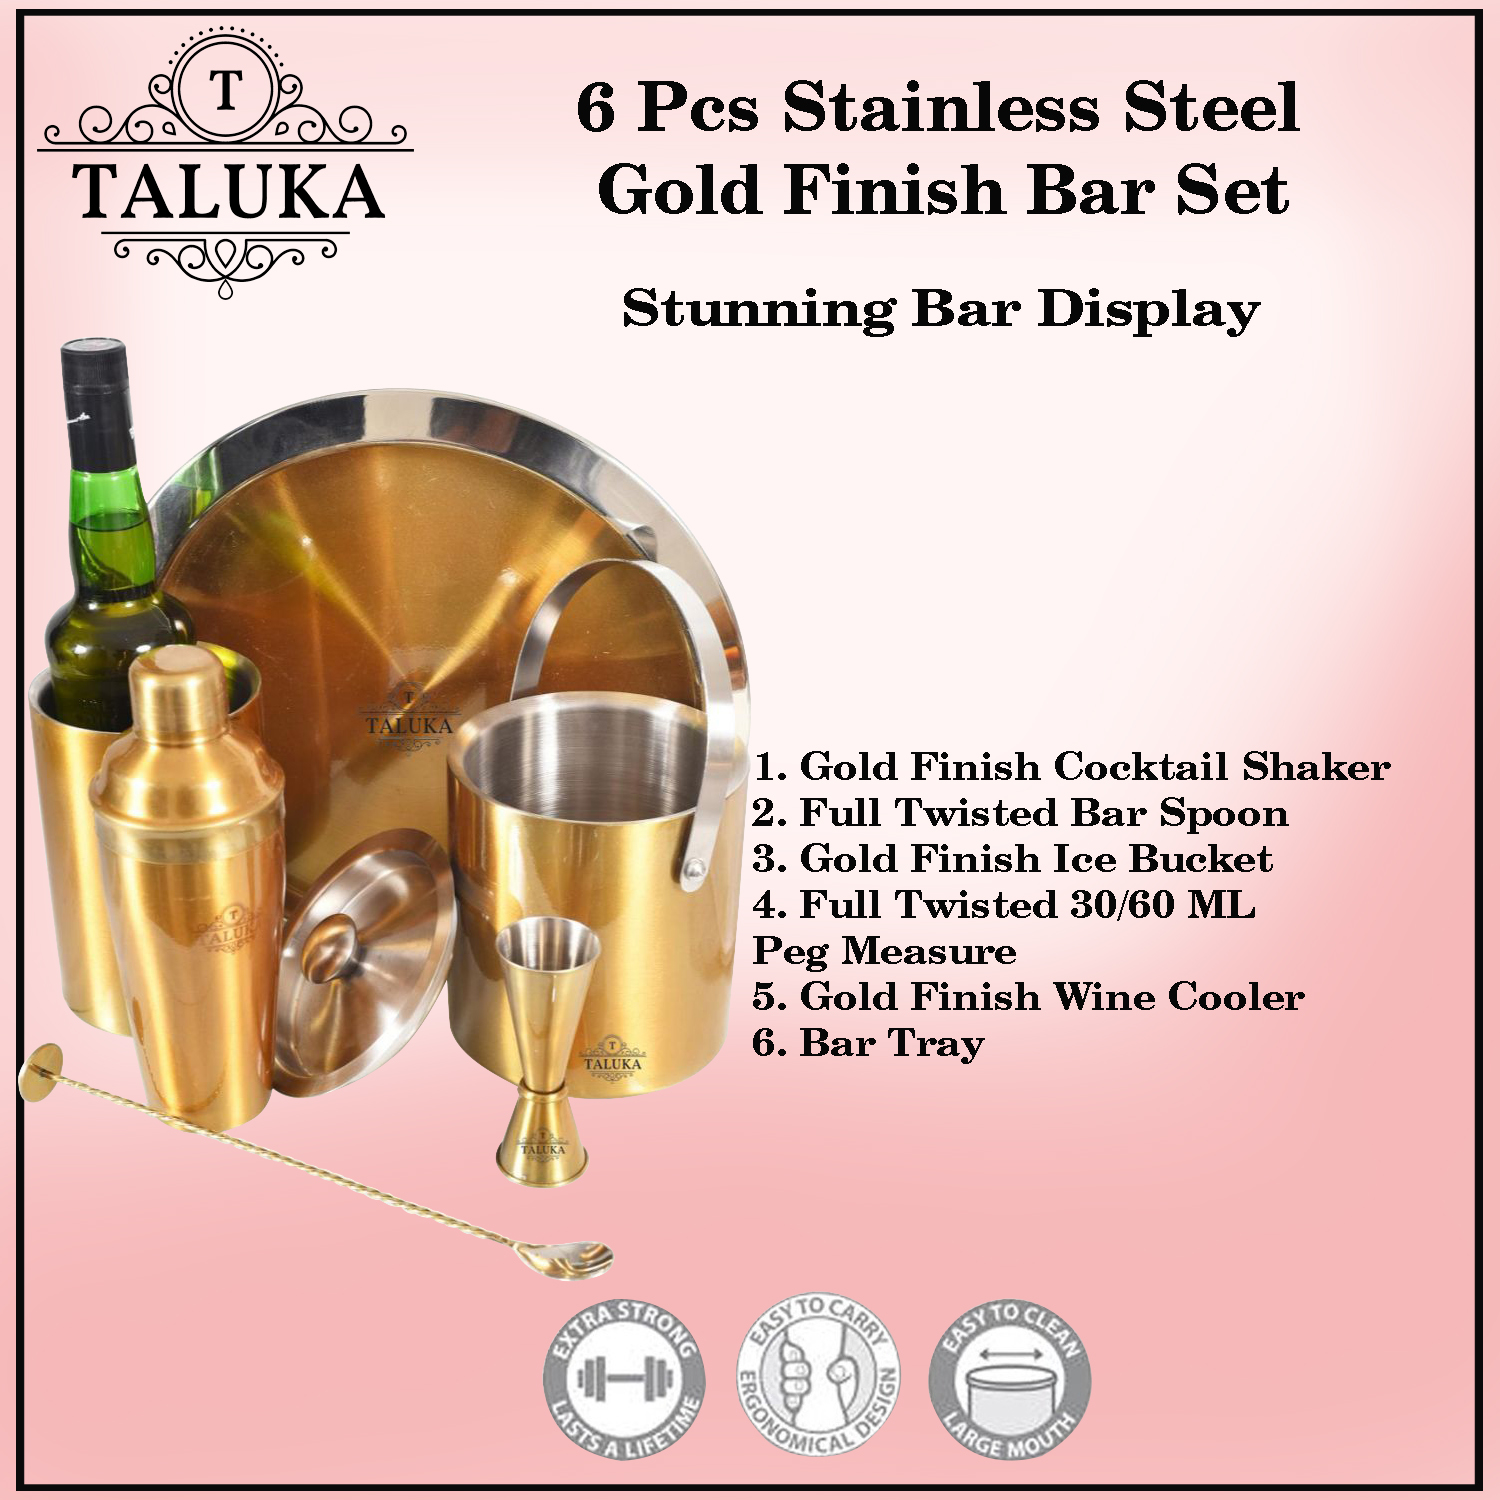 Stainless Steel Gold Plated 6 Pcs Bar Set | Cocktail Shaker 750 ml | Ice Bucket Double Wall 1500 ML | Peg Measure | Wine Cooler | Bar Spoon | Serving Tray for Bar Home Hotel Restaurant